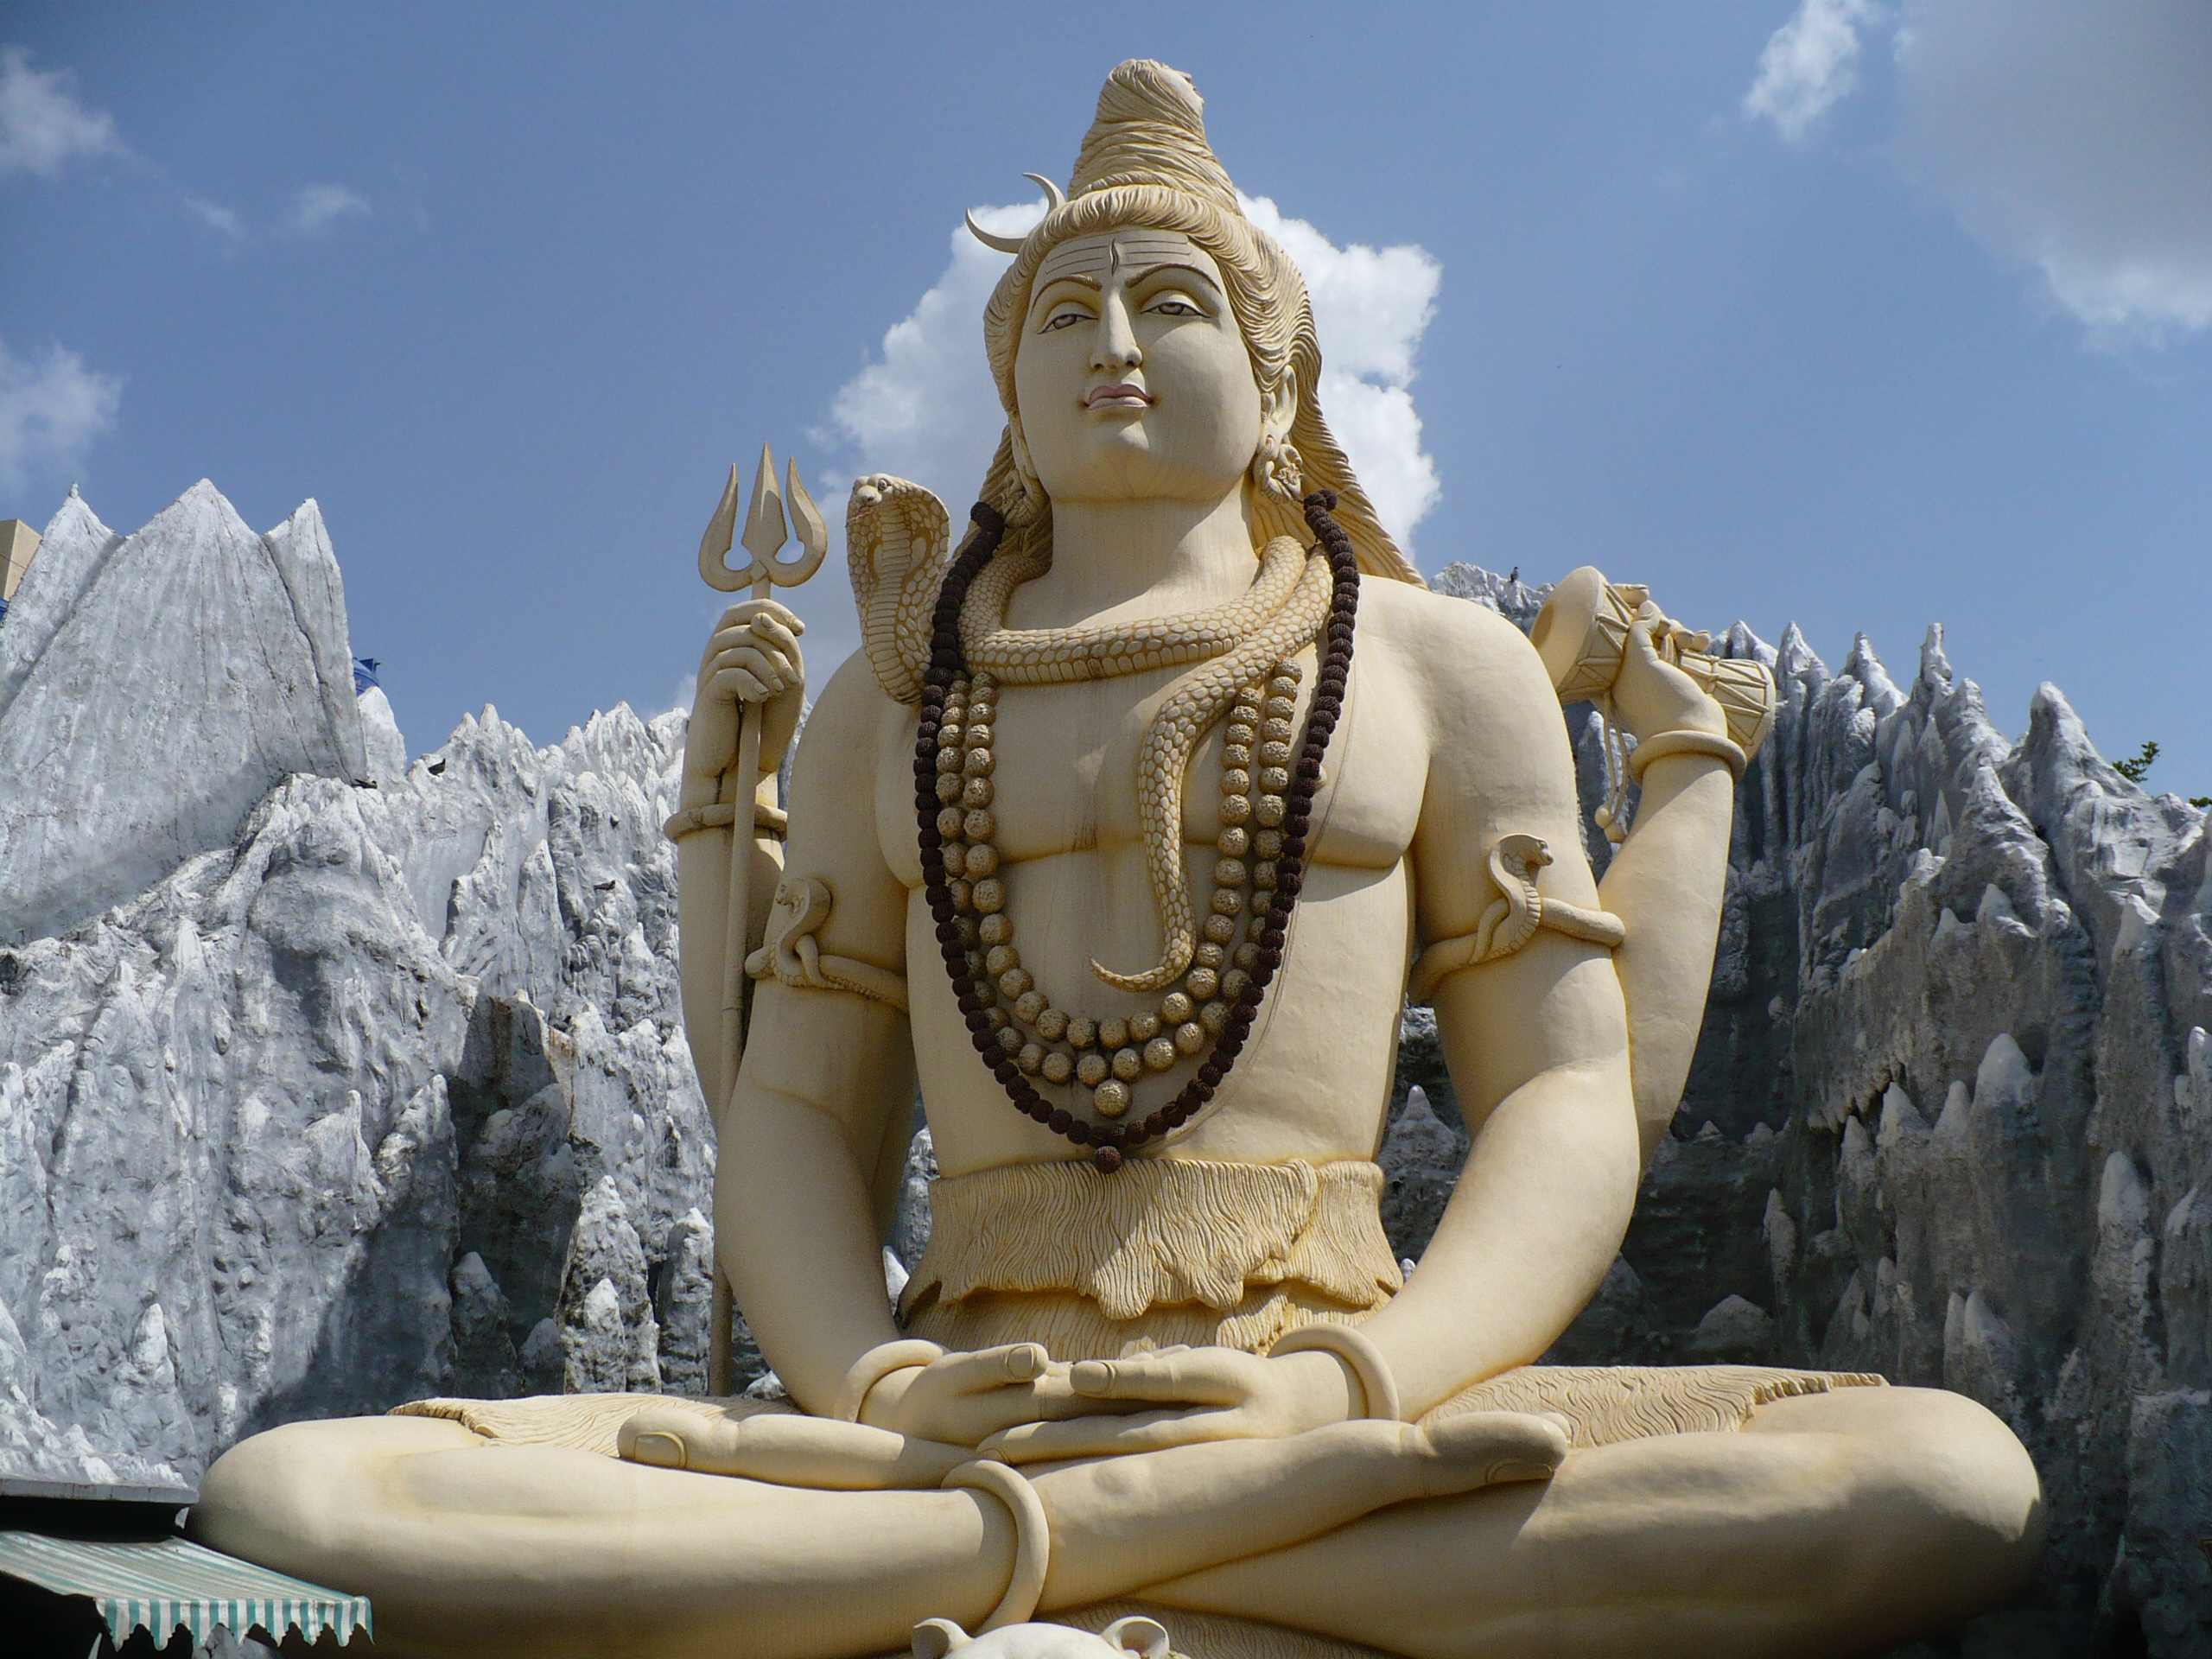 https://i2.wp.com/upload.wikimedia.org/wikipedia/commons/5/52/Bangalore_Shiva.jpg